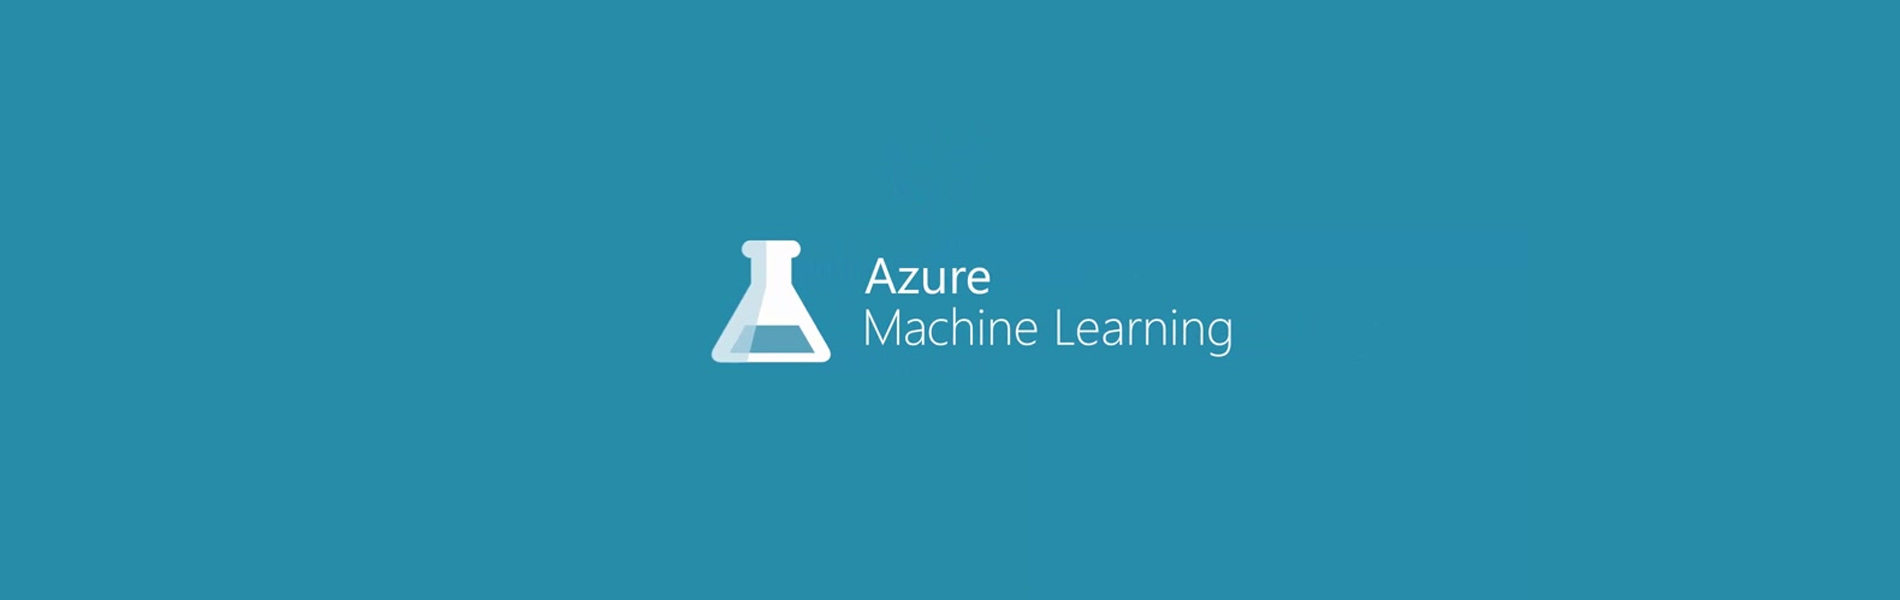 Microsoft announce the release of Microsoft Azure Machine Learning at World Partner Conference